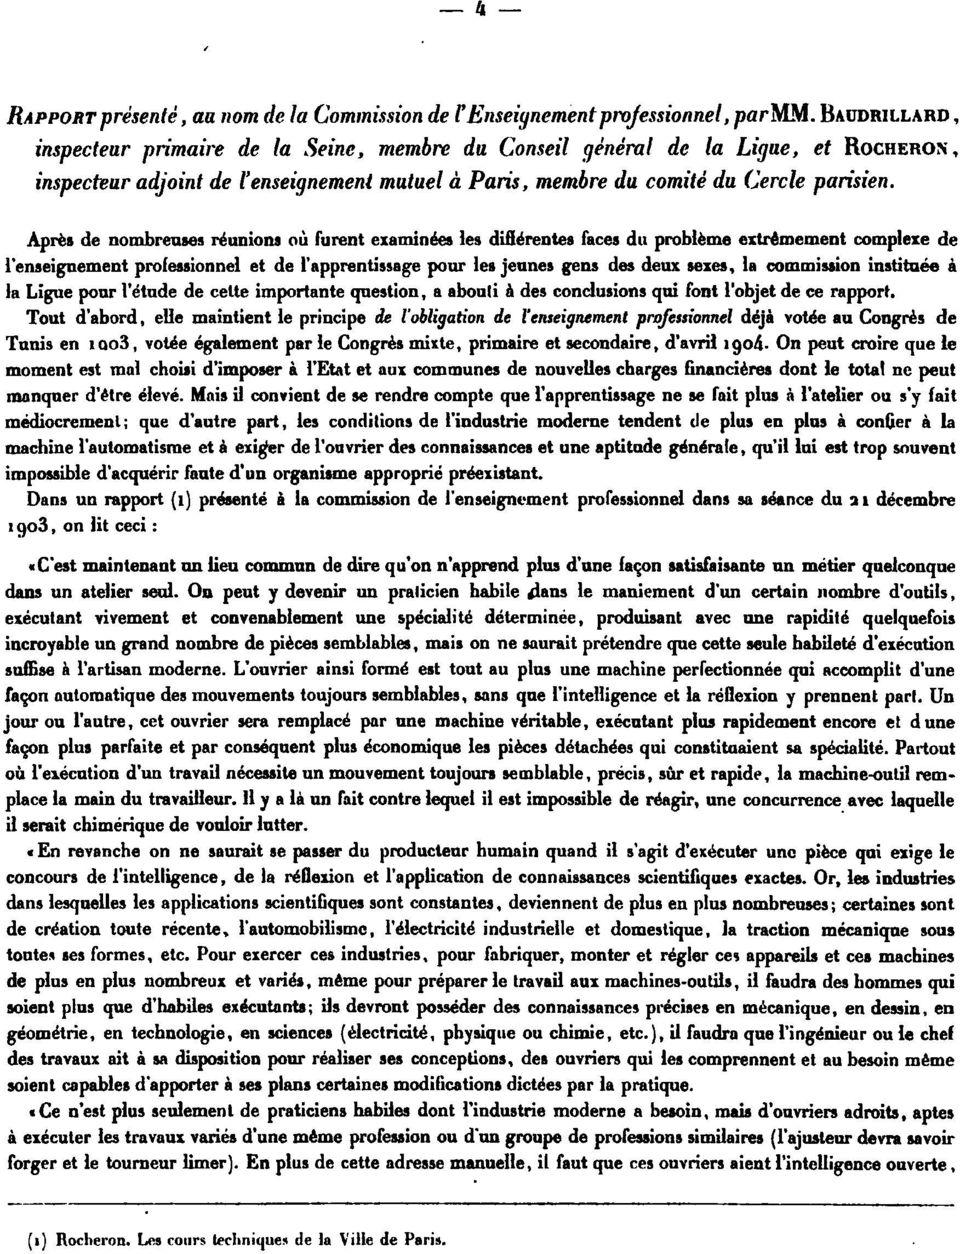 gens s ux sexes la commission institaée à la Ligue l'étu celte importante question a abouli à s conclusions qui font l'objet ce rapport Tout d'abord elle maintient le principe l'obligation